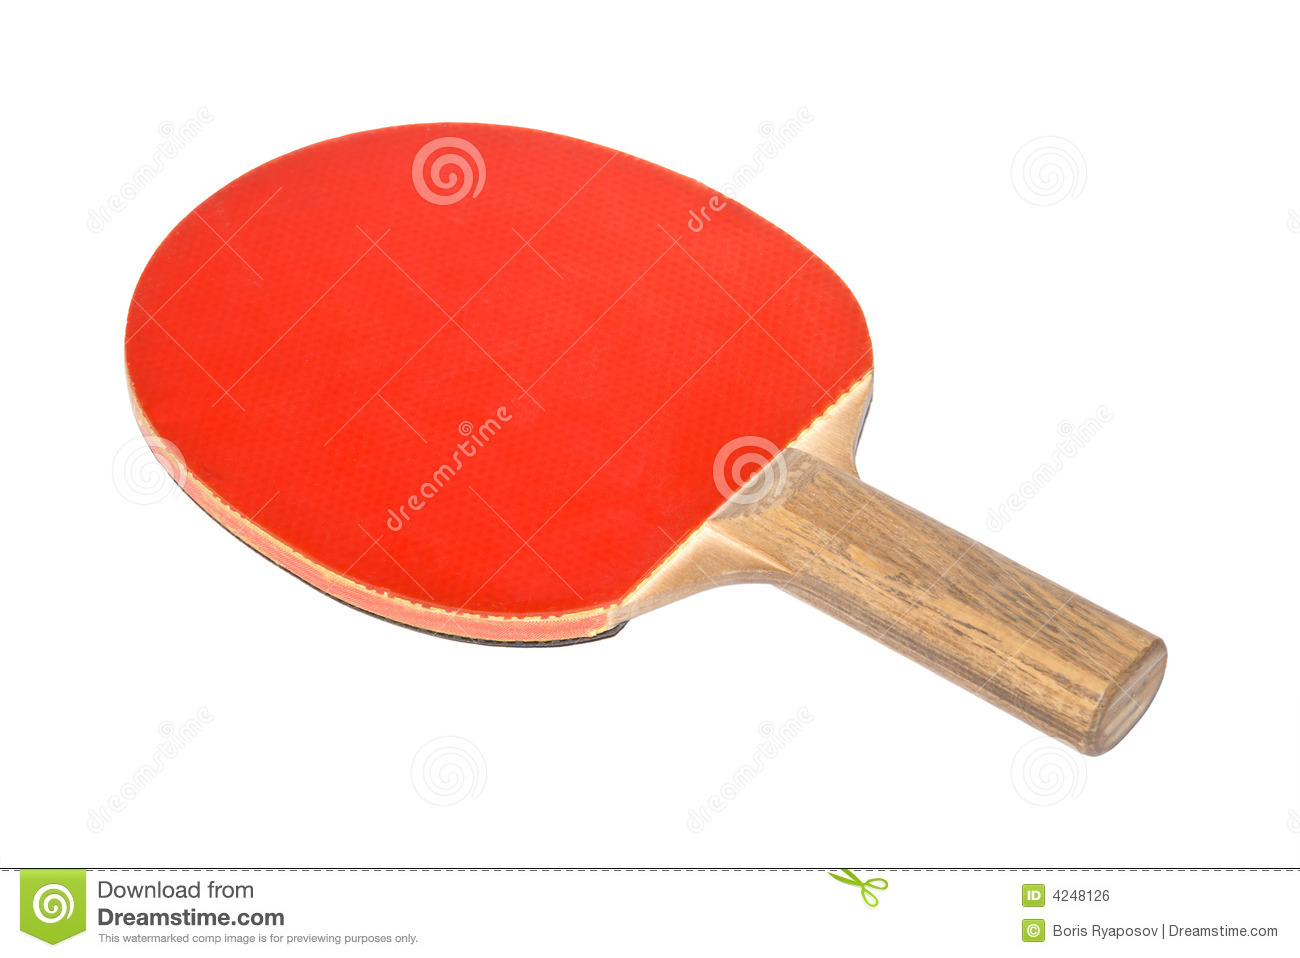 Table Tennis Equipment Royalty Free Stock Image - Image: 4248126